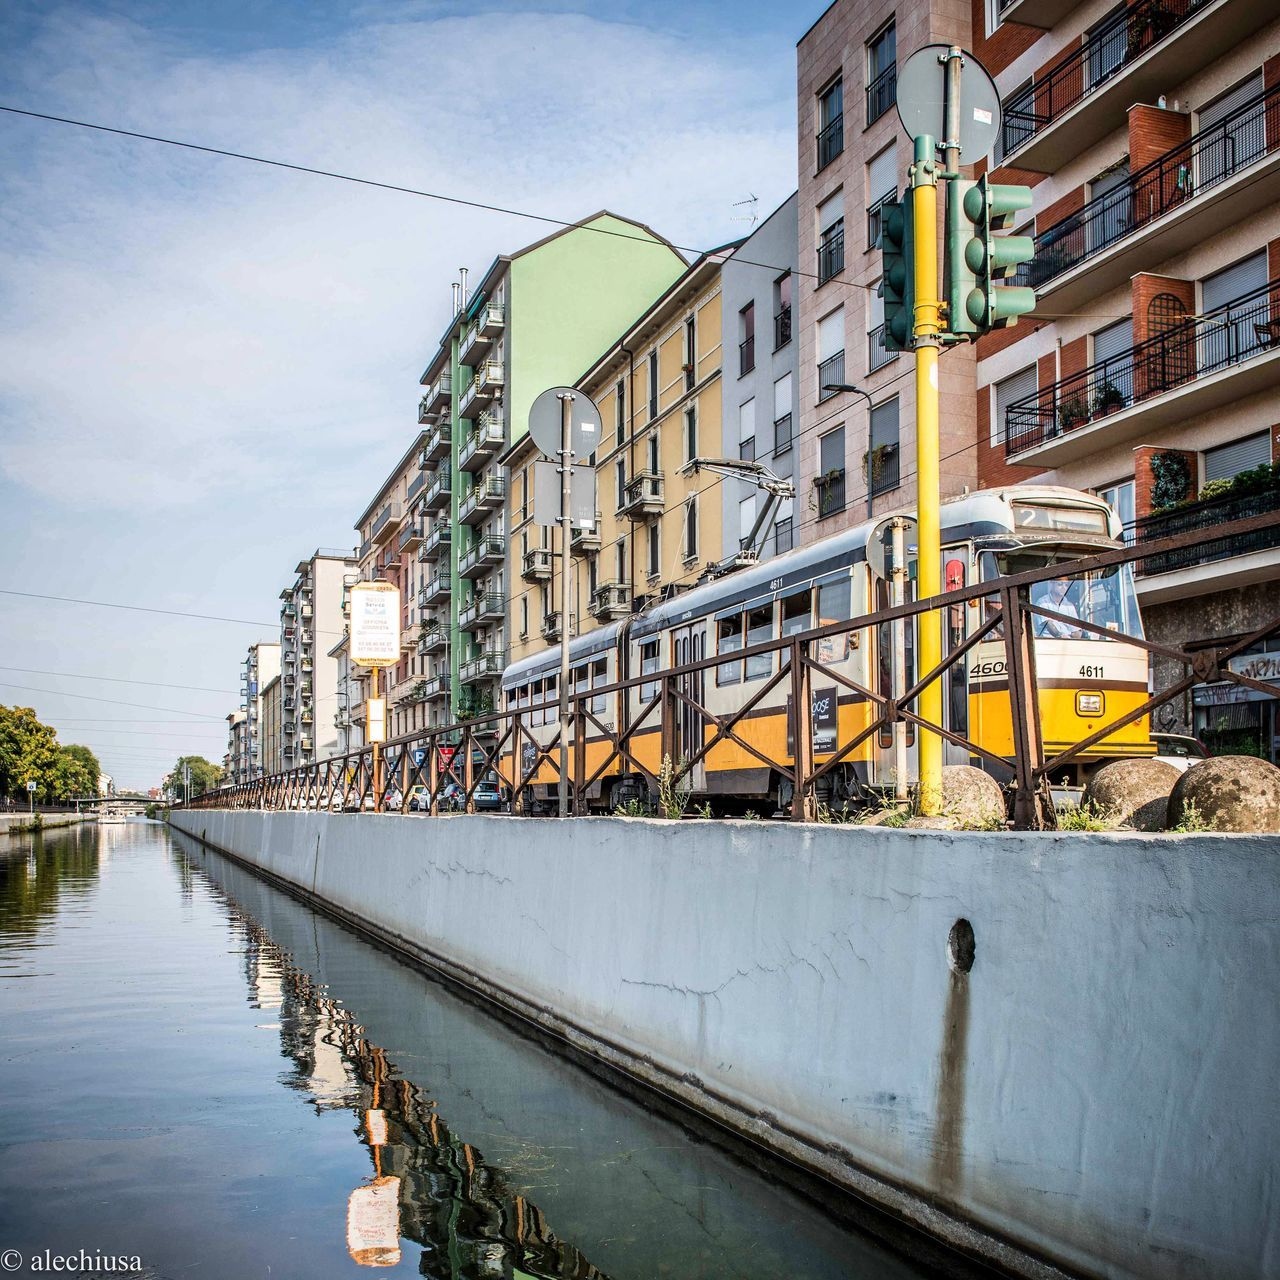 architecture, building exterior, built structure, sky, day, outdoors, water, no people, city